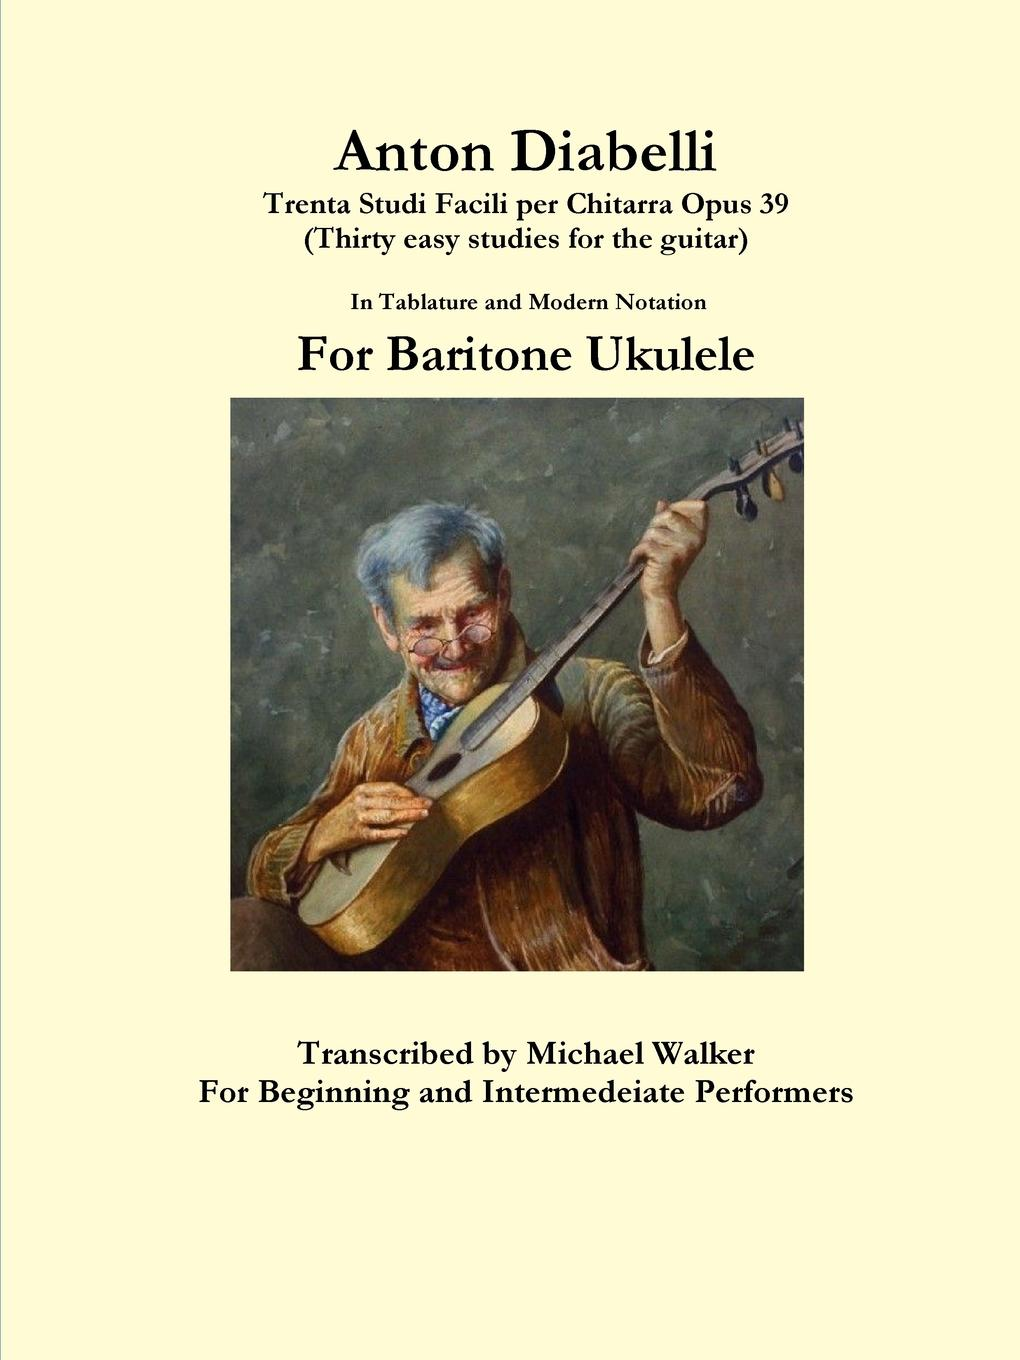 Michael Walker Anton Diabelli. Trenta Studi Facili per Chitarra Opus 39 (Thirty easy studies for the guitar) In Tablature and Modern Notation For Baritone Ukulele adjustable new brand lcd clip on electric tuner for guitar chromatic bass violin ukulele universal portable guitar tuner